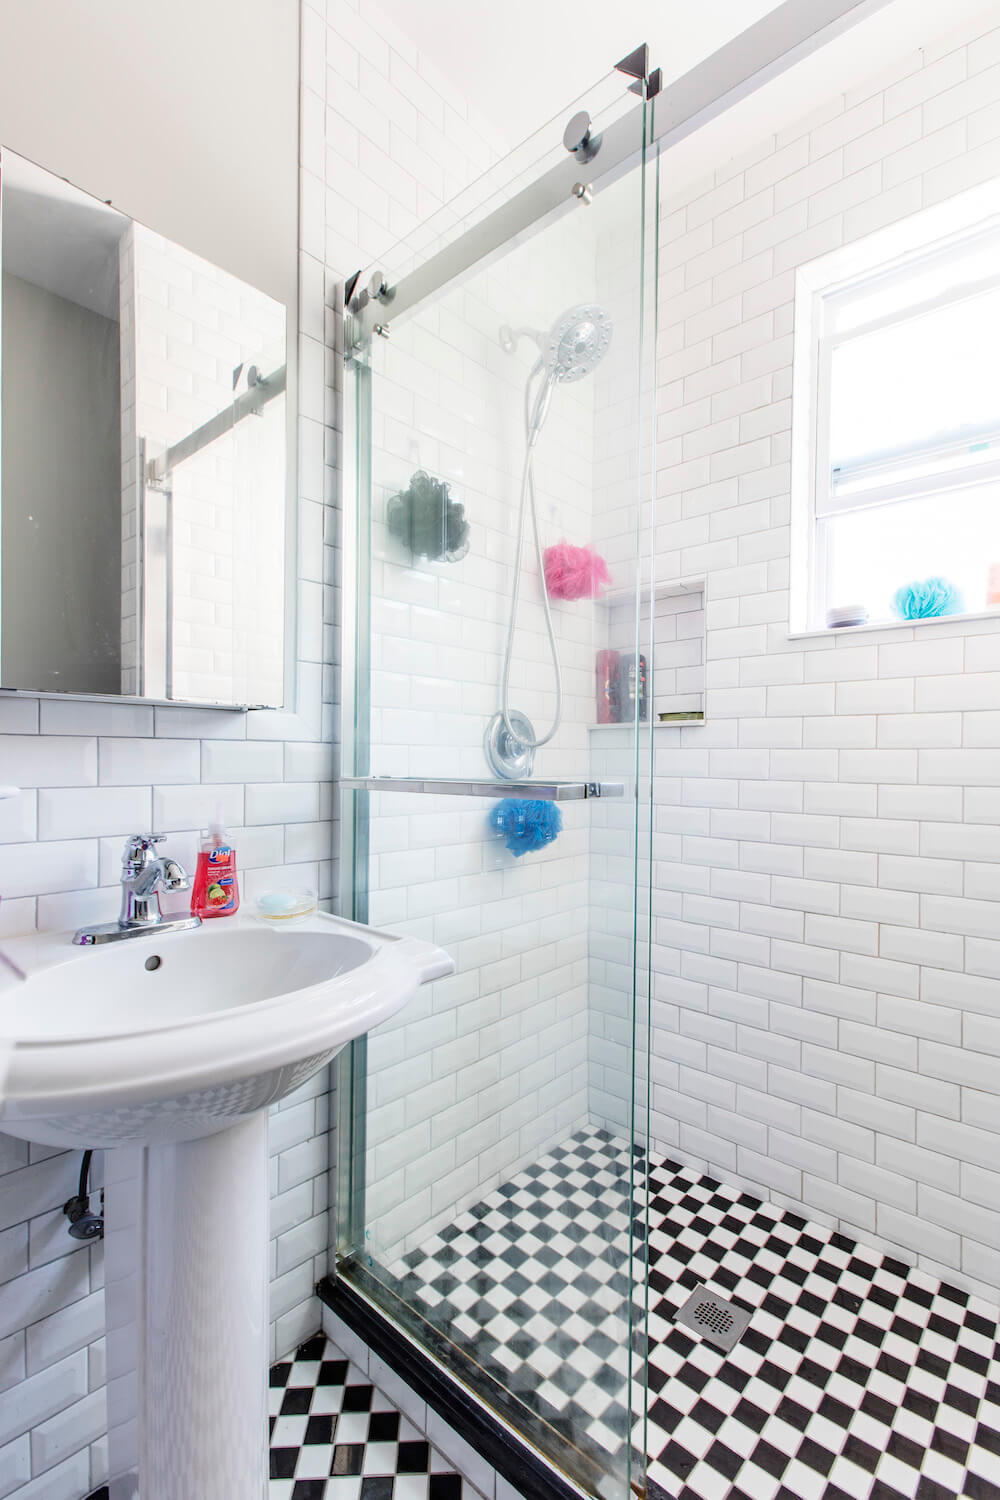 Walk-in shower with black and white checkered floor, glass shower door, and pedestal sink